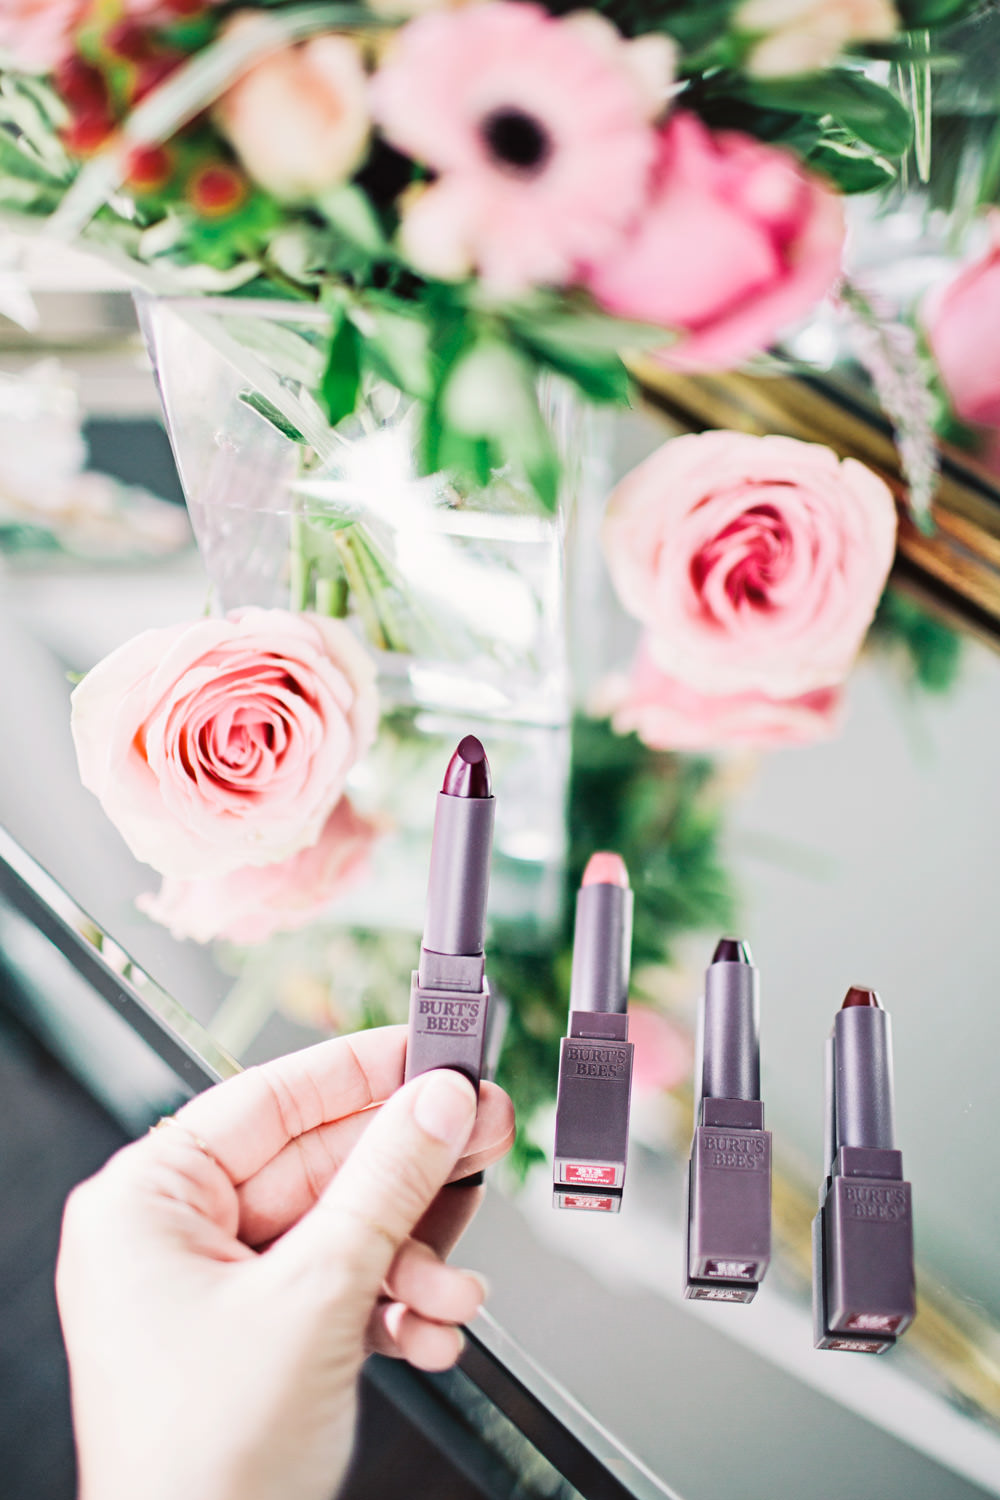 Dash of Darling shares four lipstick shades for spring with Burt's Bees